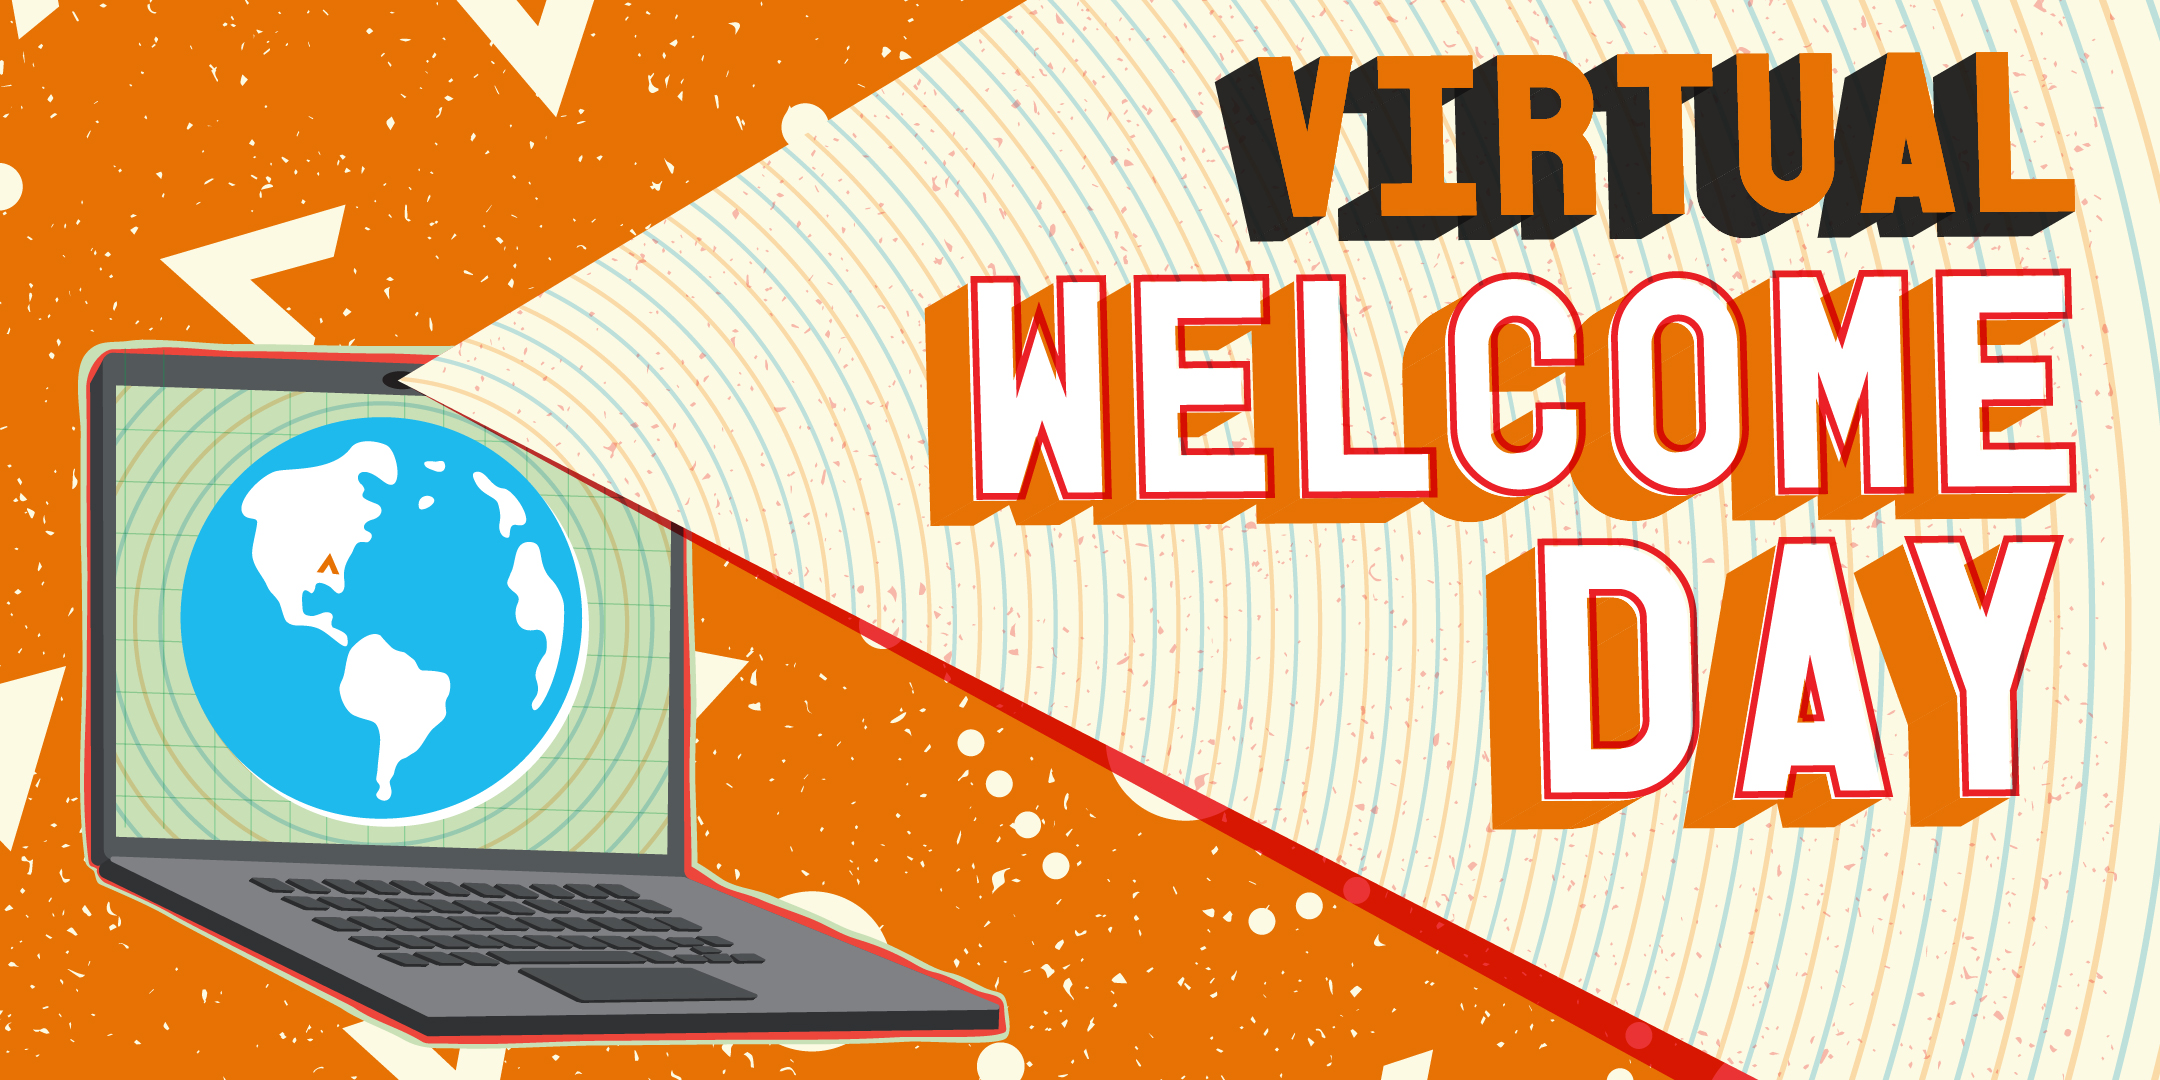 Image of a laptop with a light that say Virtual Welcome Day. Orange background with AAC pattern.